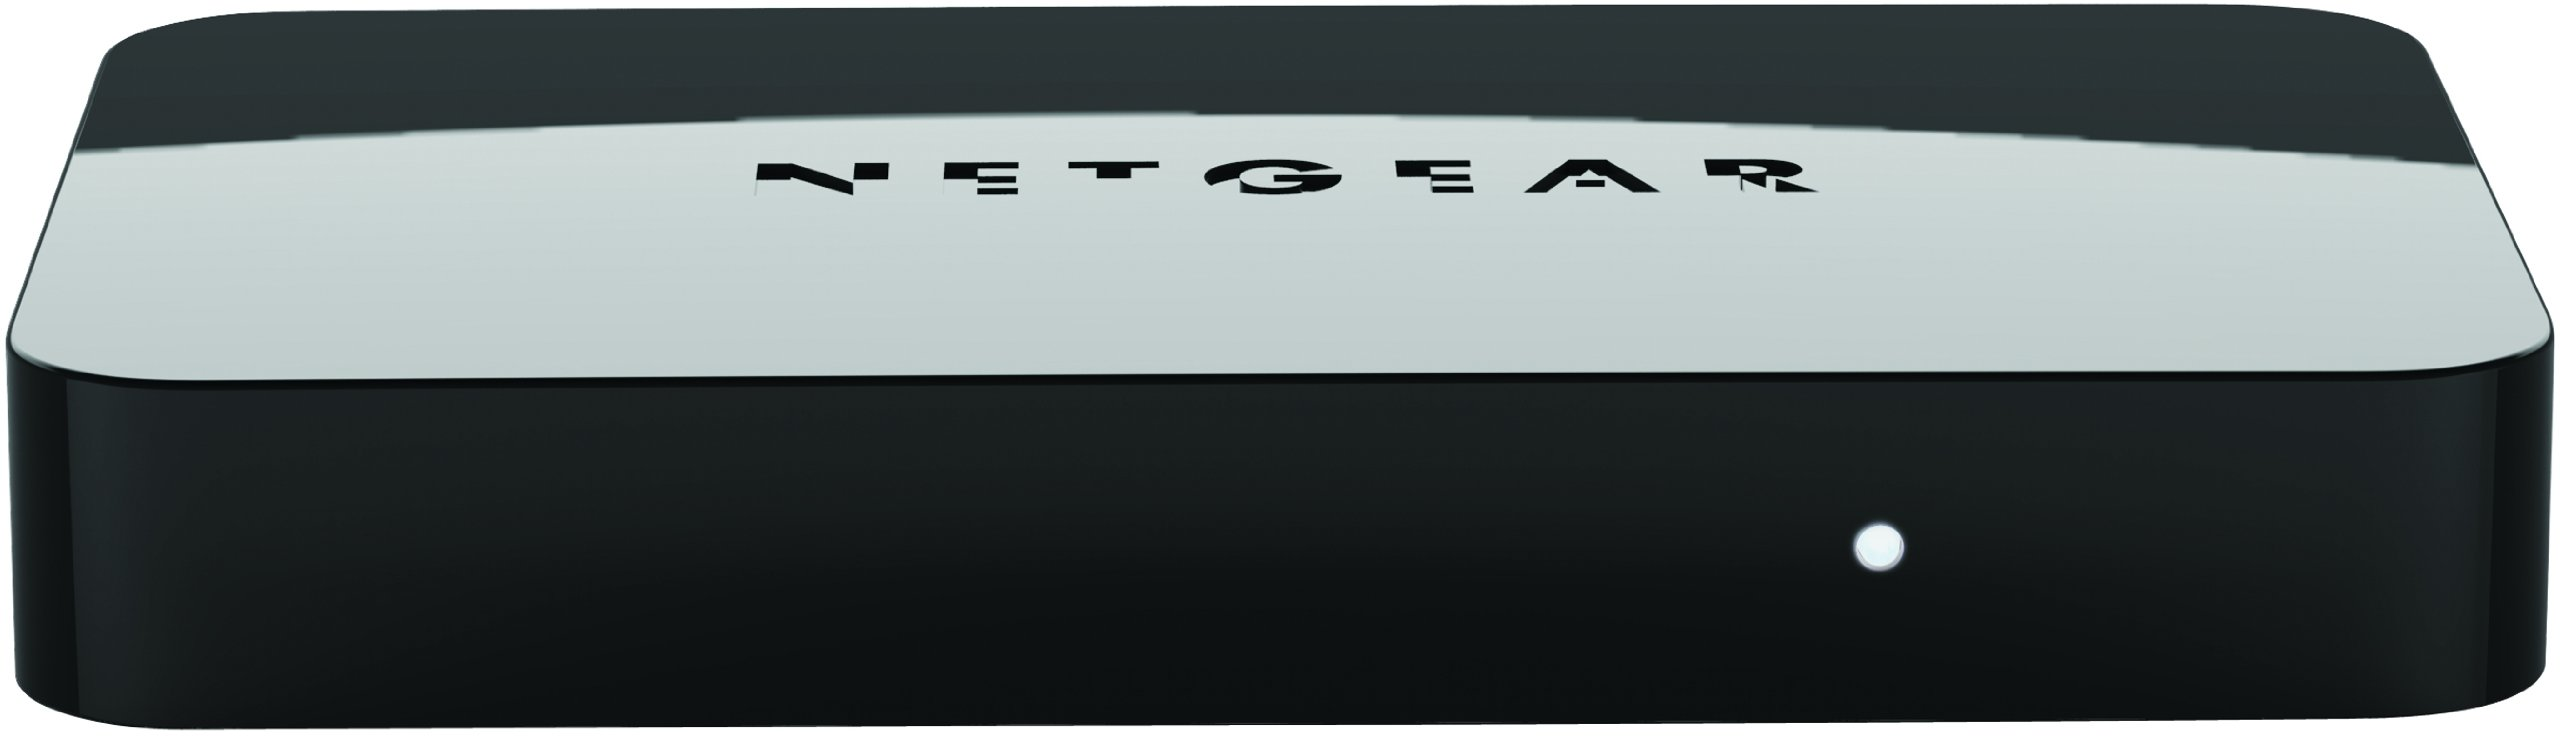 NETGEAR Push2TV Wireless Display HDMI Adapter with Miracast (PTV3000) Certified for use with Kindle Fire HDX by NETGEAR